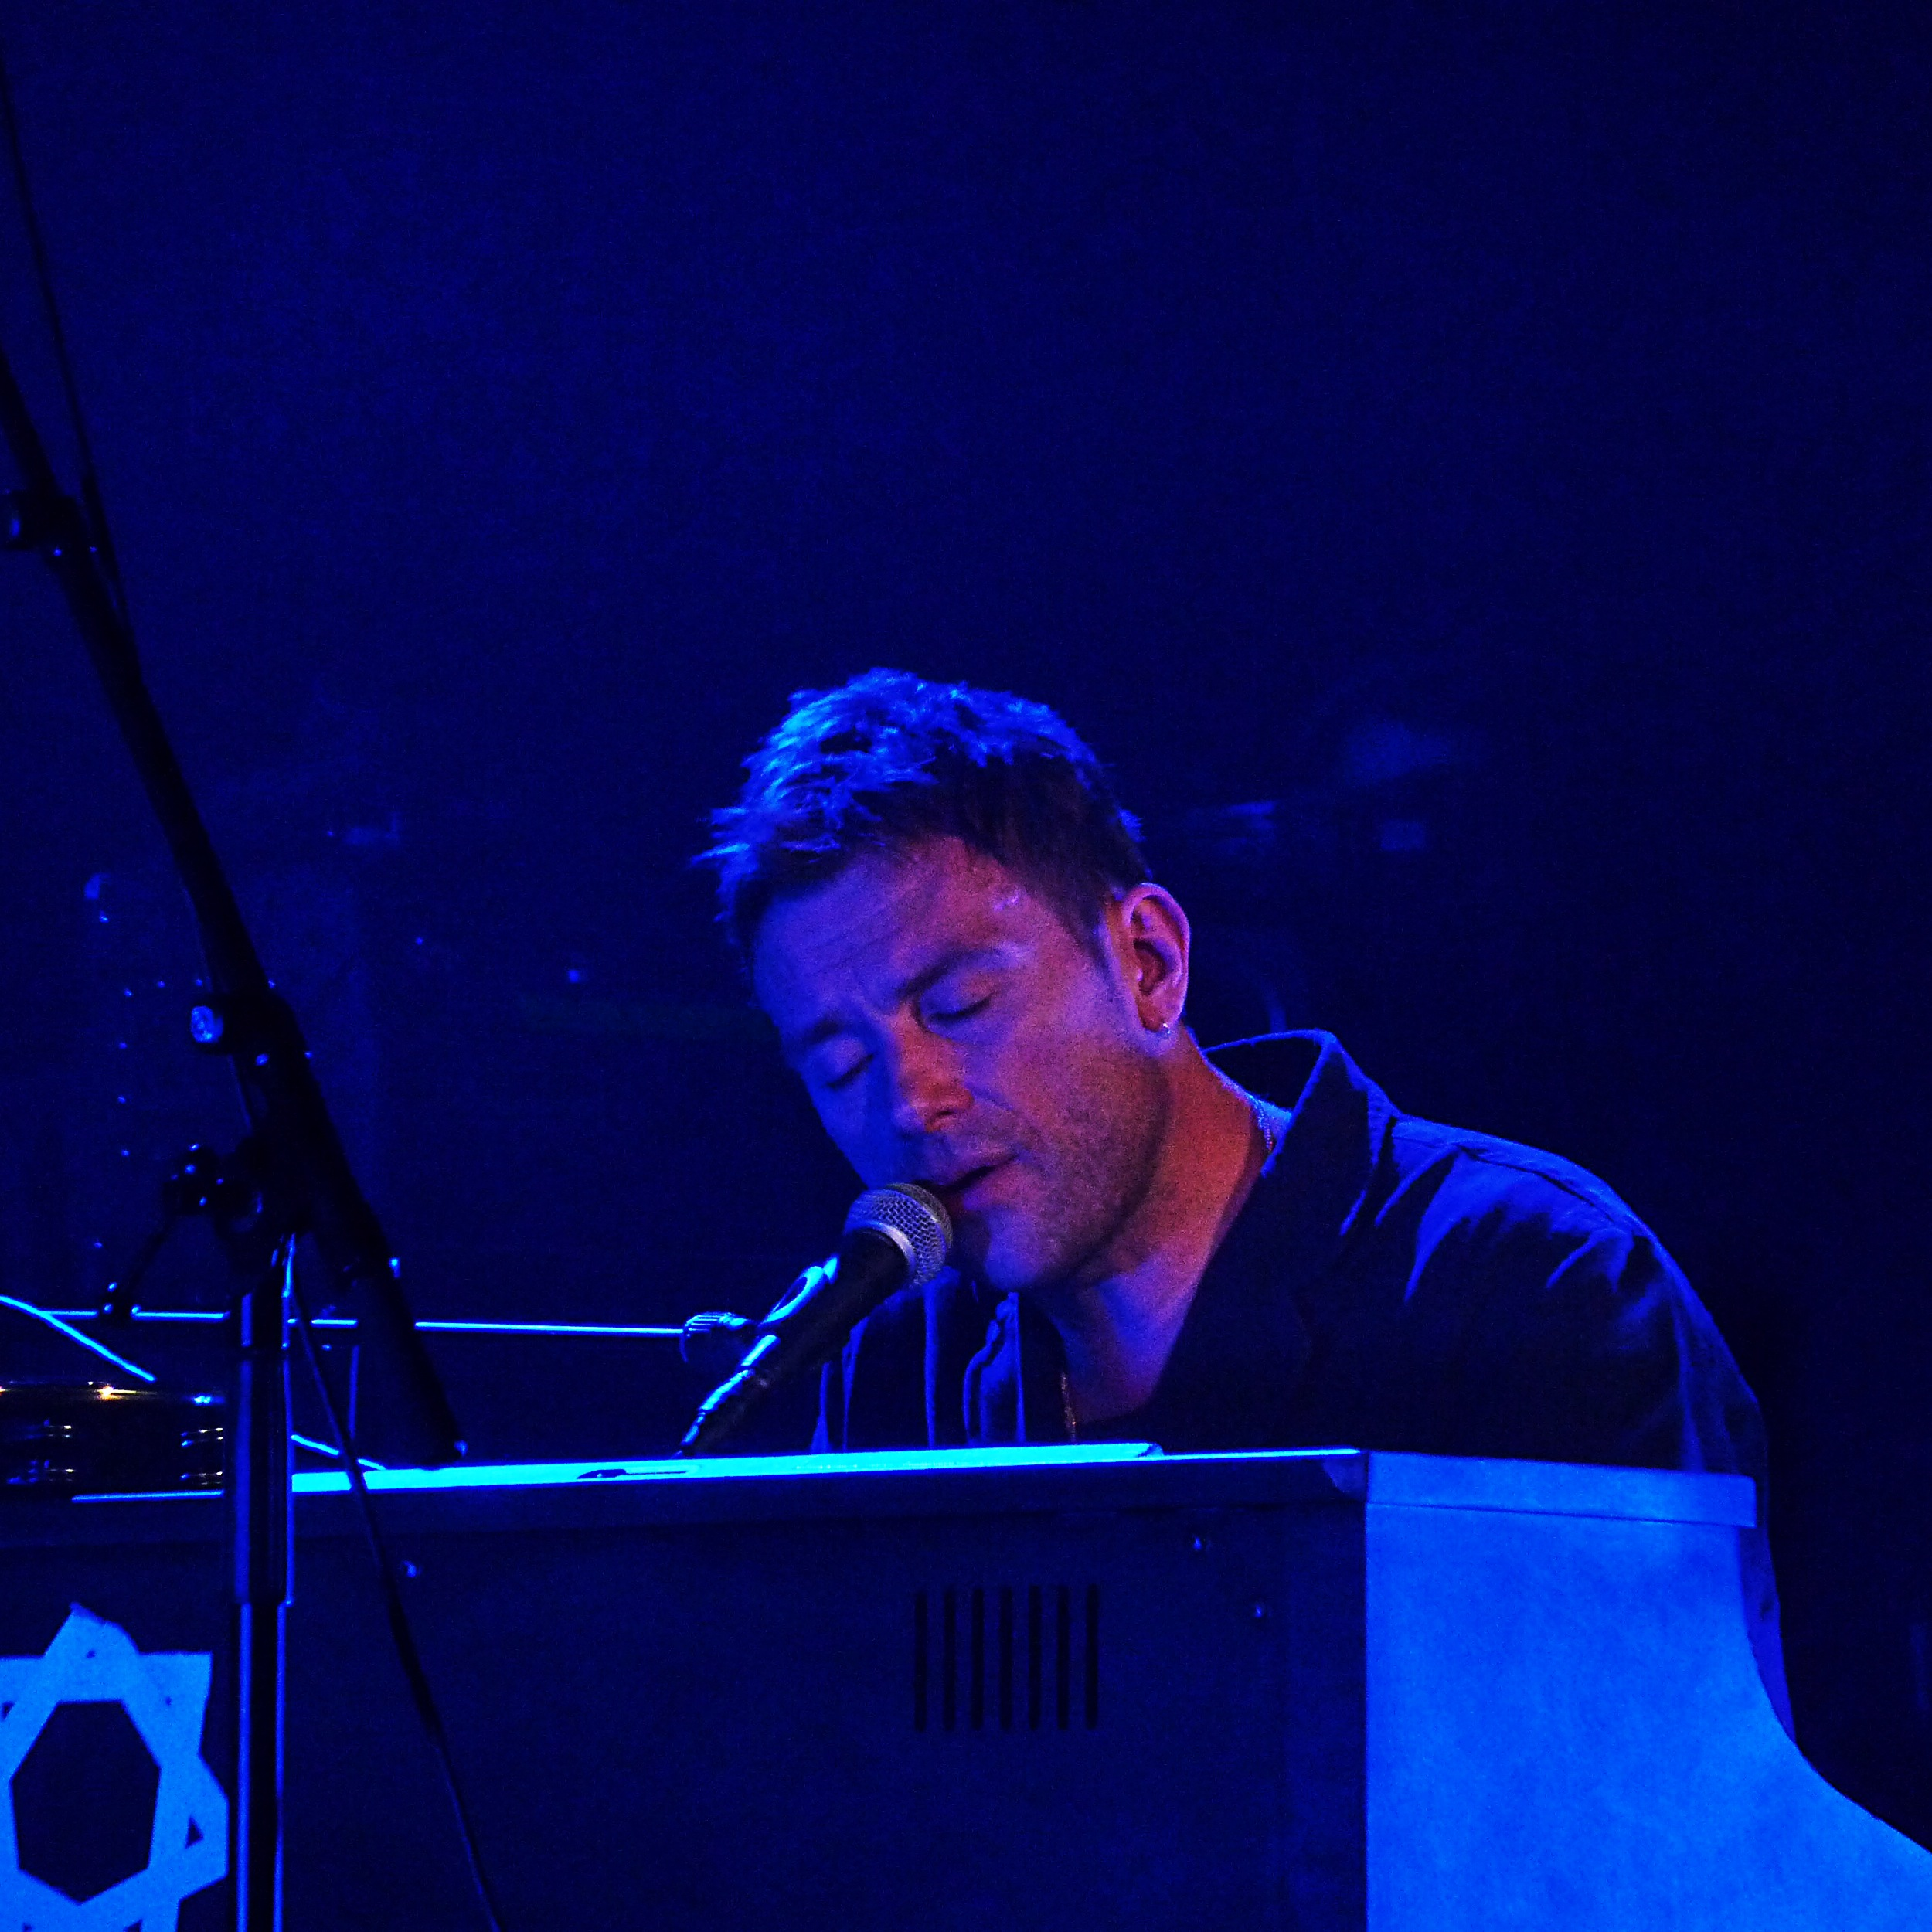 Damon Albarn piano concert on stage singer blur gorillaz  live show Casino de Paris Festival Les Inrocks Philips Everyday robots photo by United States of Paris Blog